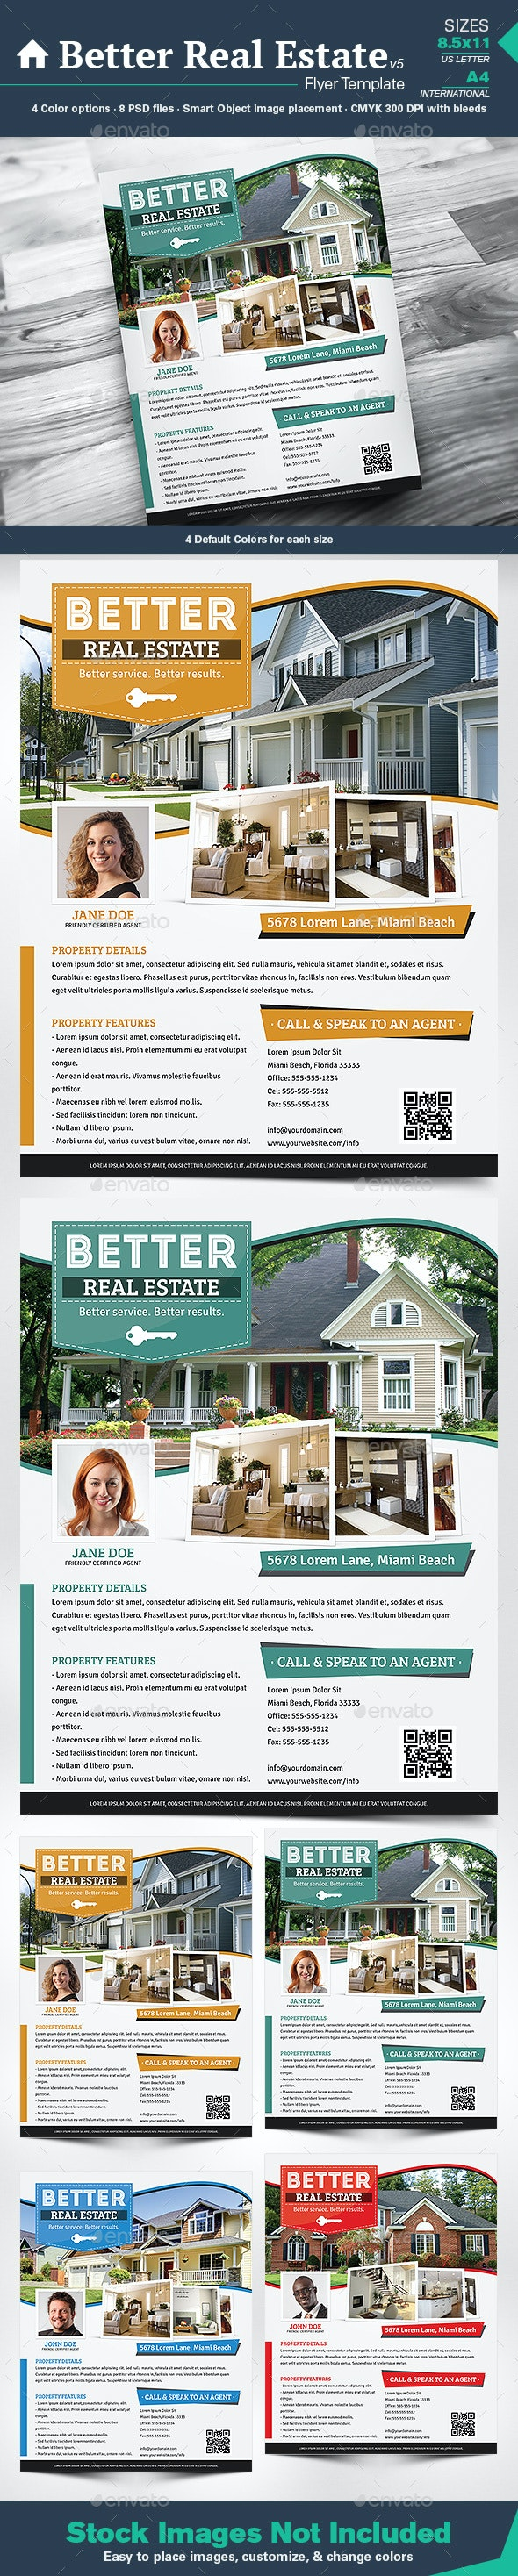 Better Real Estate Flyer Template v5 - Corporate Flyers